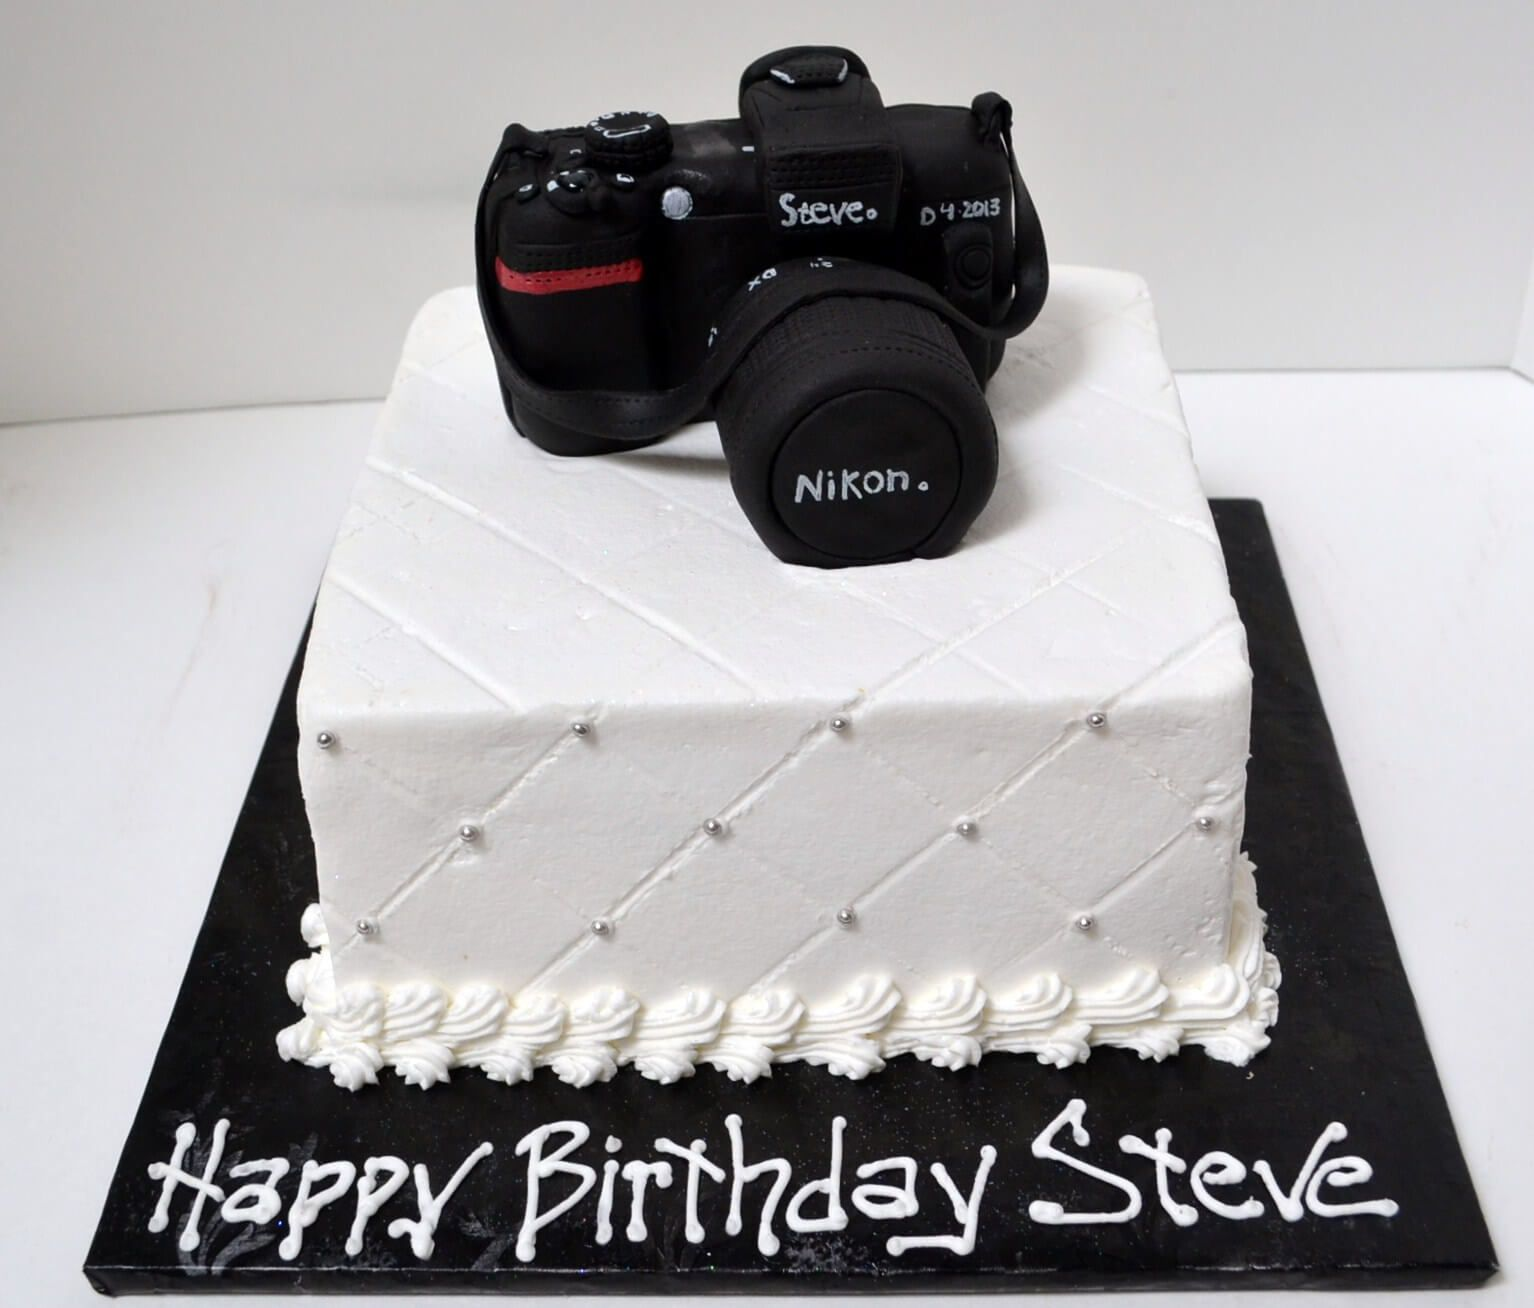 Pleasant 526 Camera Cake With Images Camera Cakes Happy Birthday Steve Funny Birthday Cards Online Barepcheapnameinfo